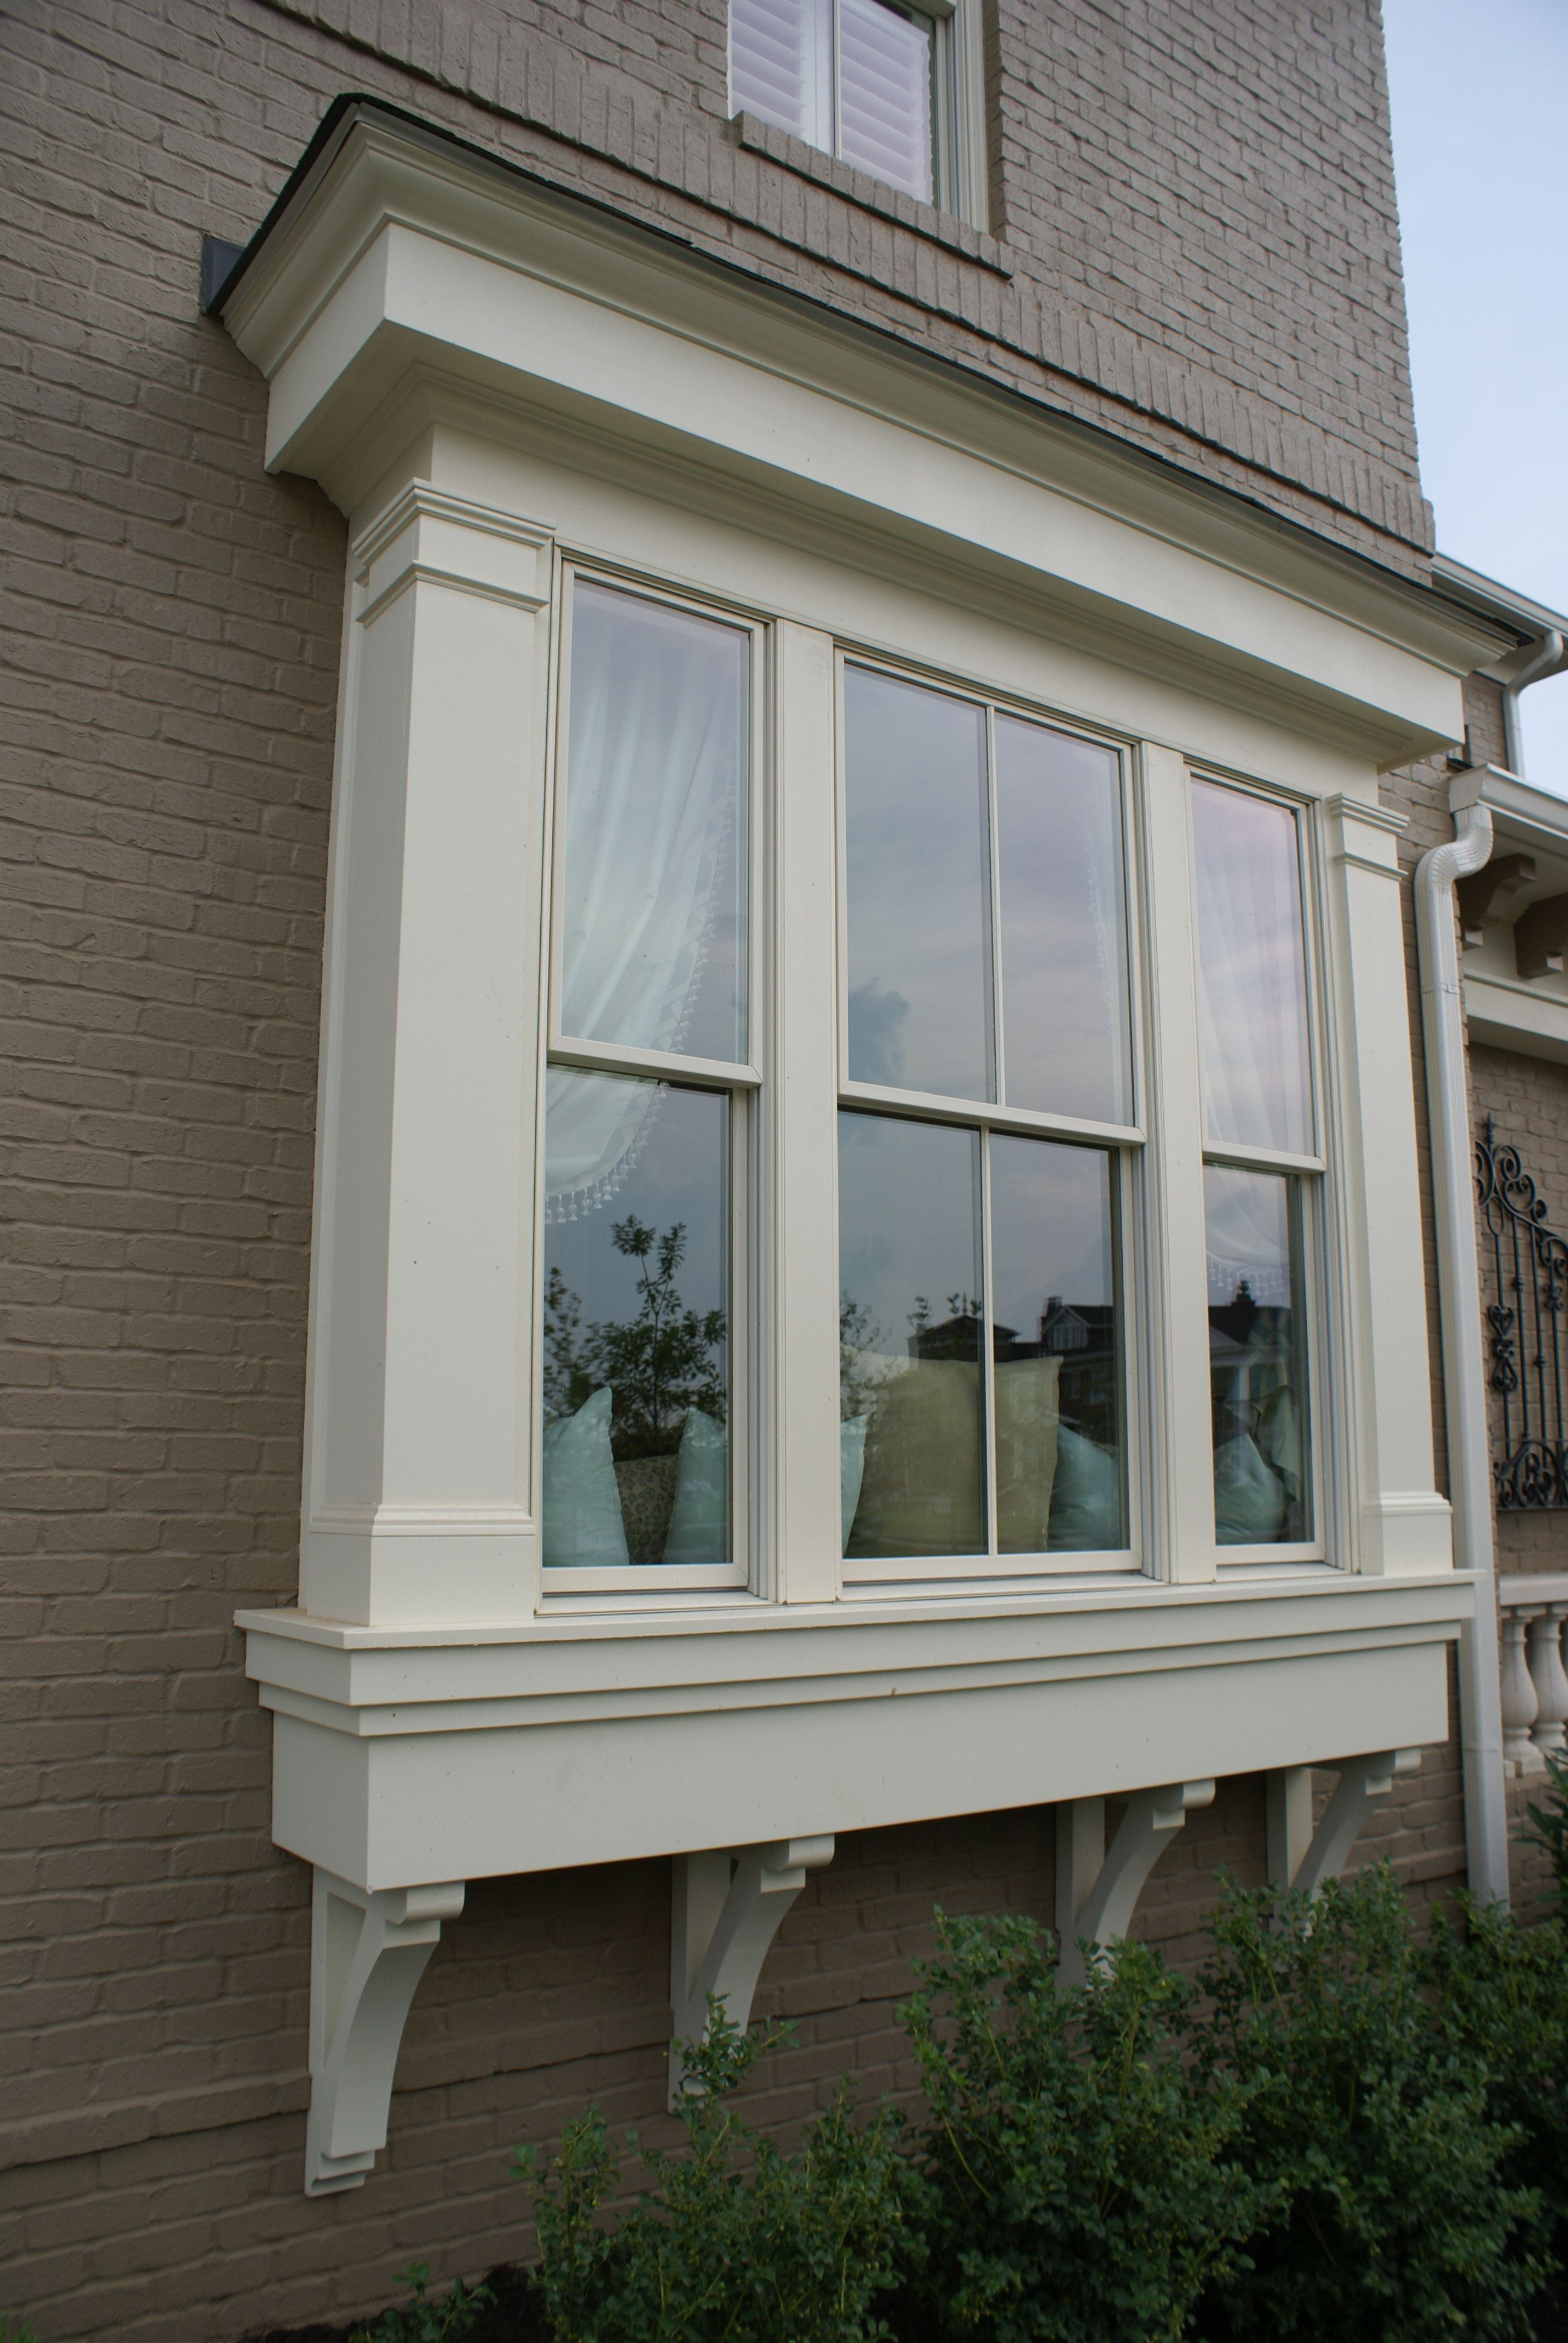 Pin By Kathy Muscari On Creative Home Bumpouts Windows Exterior Home Remodeling Home Builders